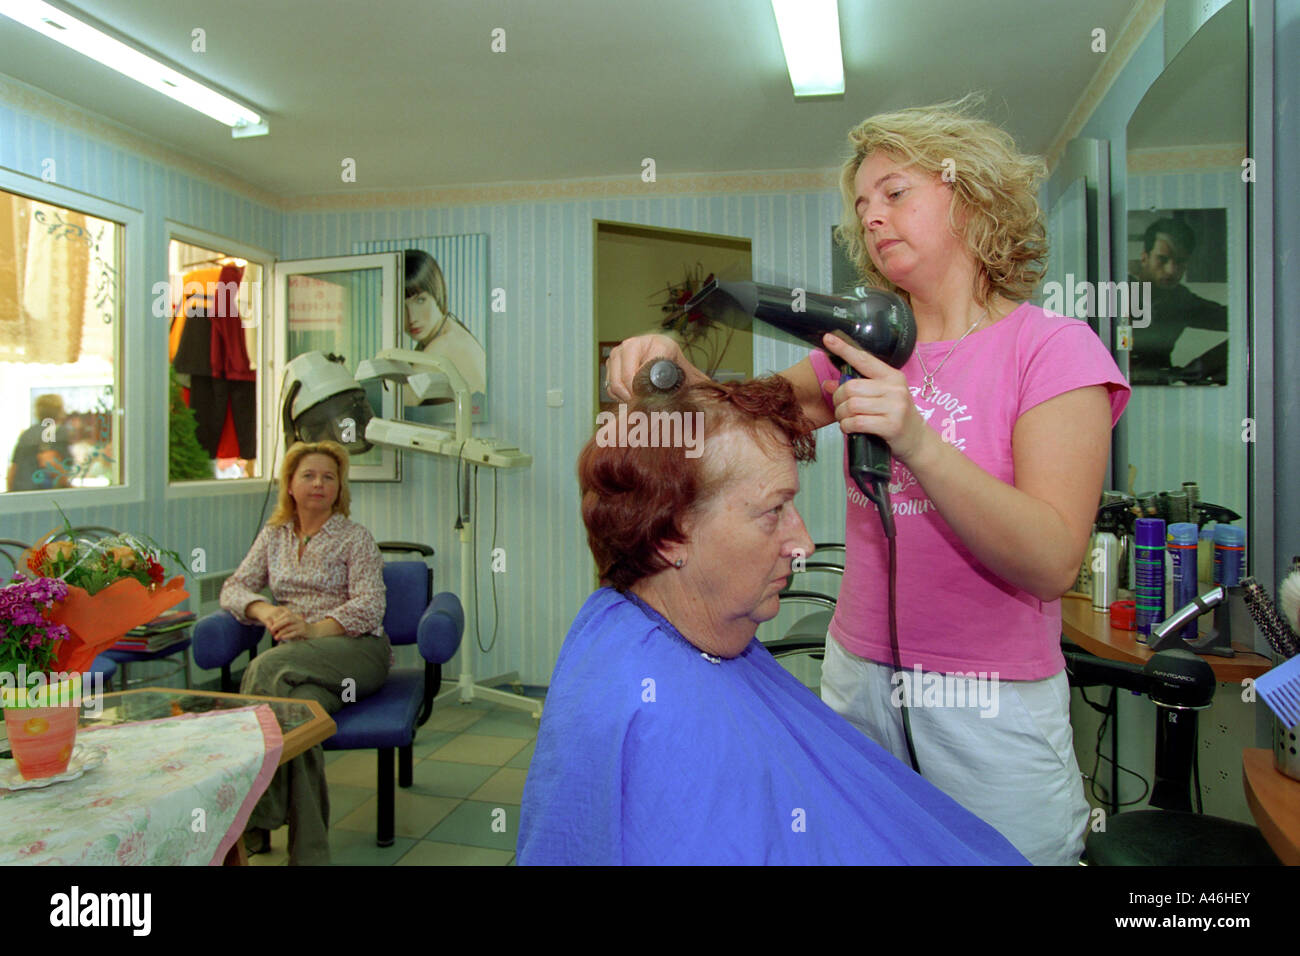 Polish hair dresser blow-dries hair of a German client, Slubice, Poland - Stock Image